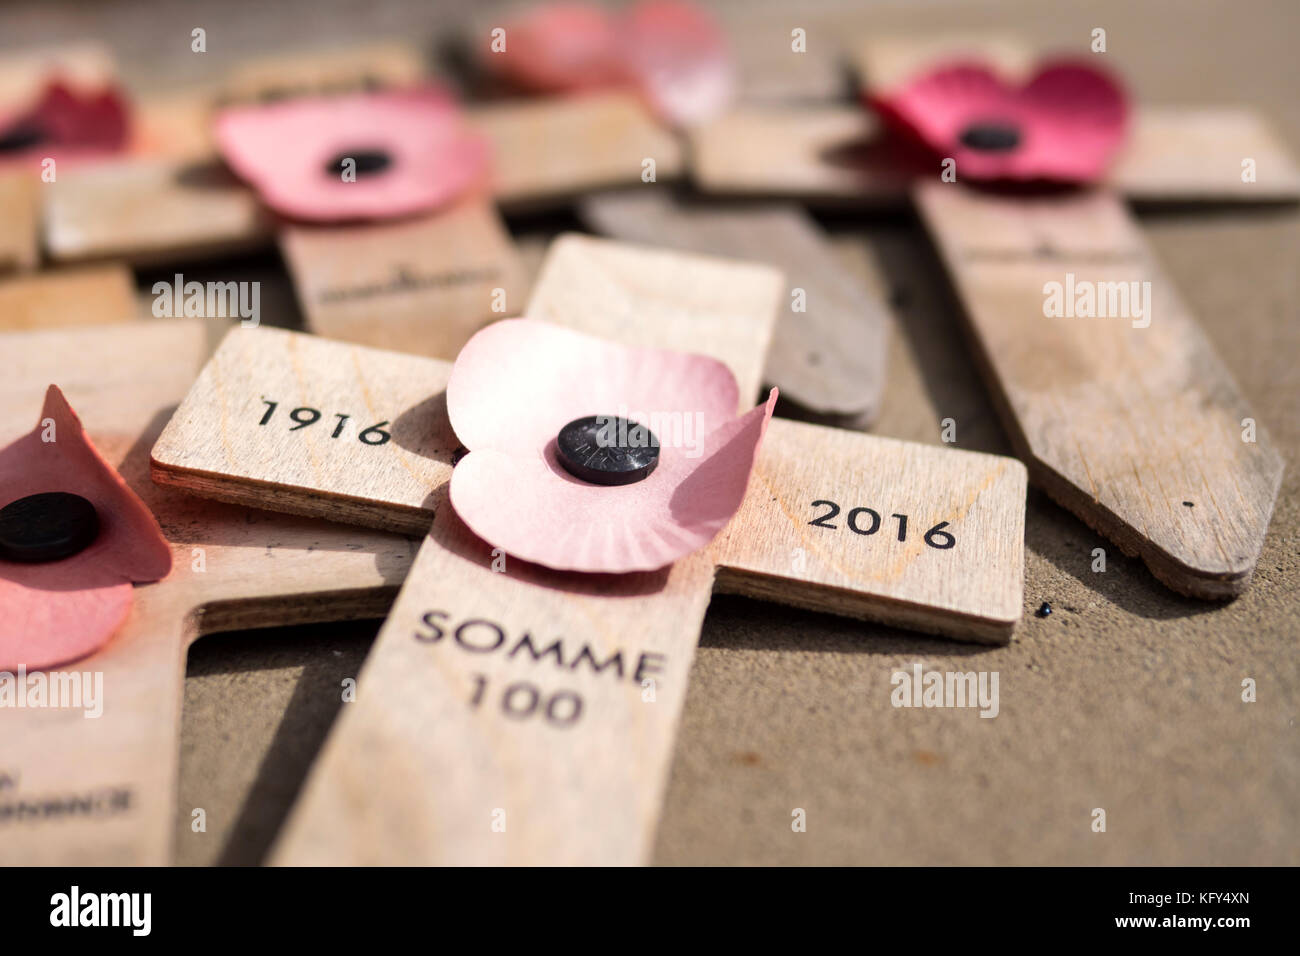 Remembering the Great War - Stock Image